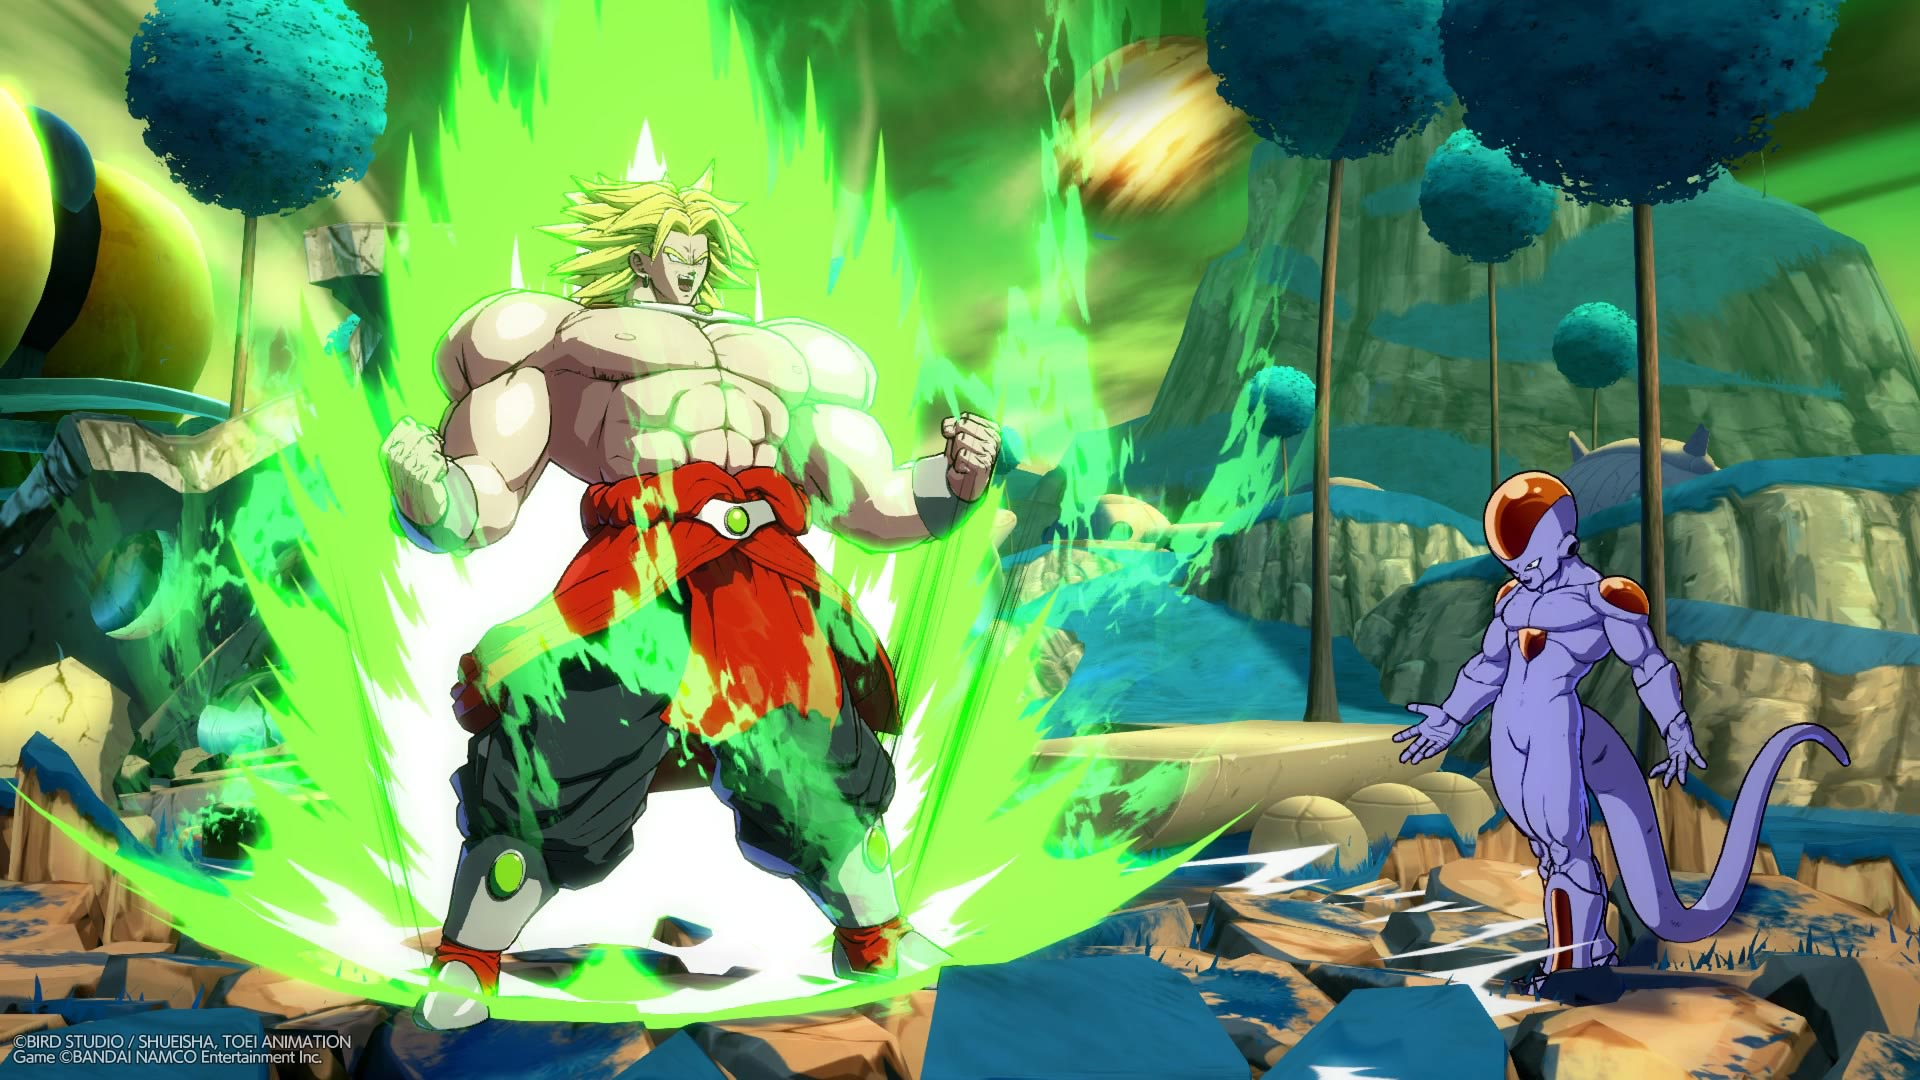 Broly and Bardock screenshots in Dragon Ball FighterZ 9 out of 12 image gallery